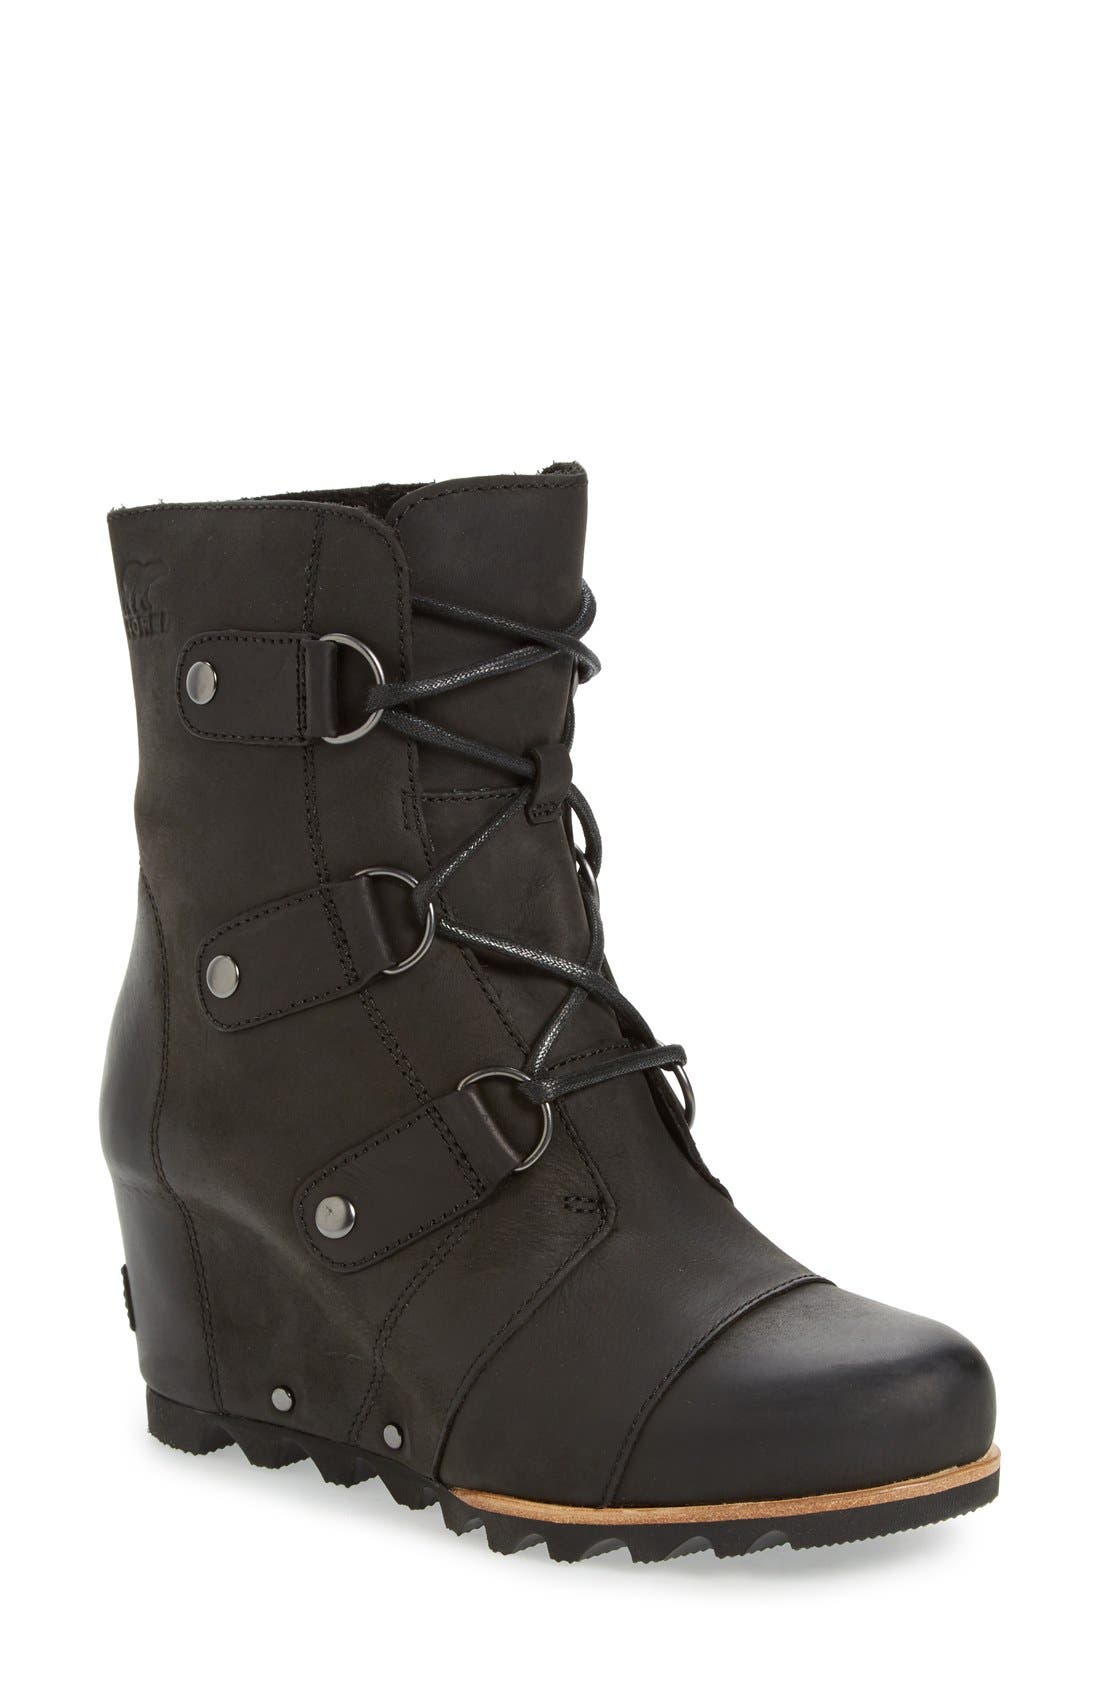 Main Image - SOREL 'Joan of Arctic' Waterproof Wedge Boot (Women)